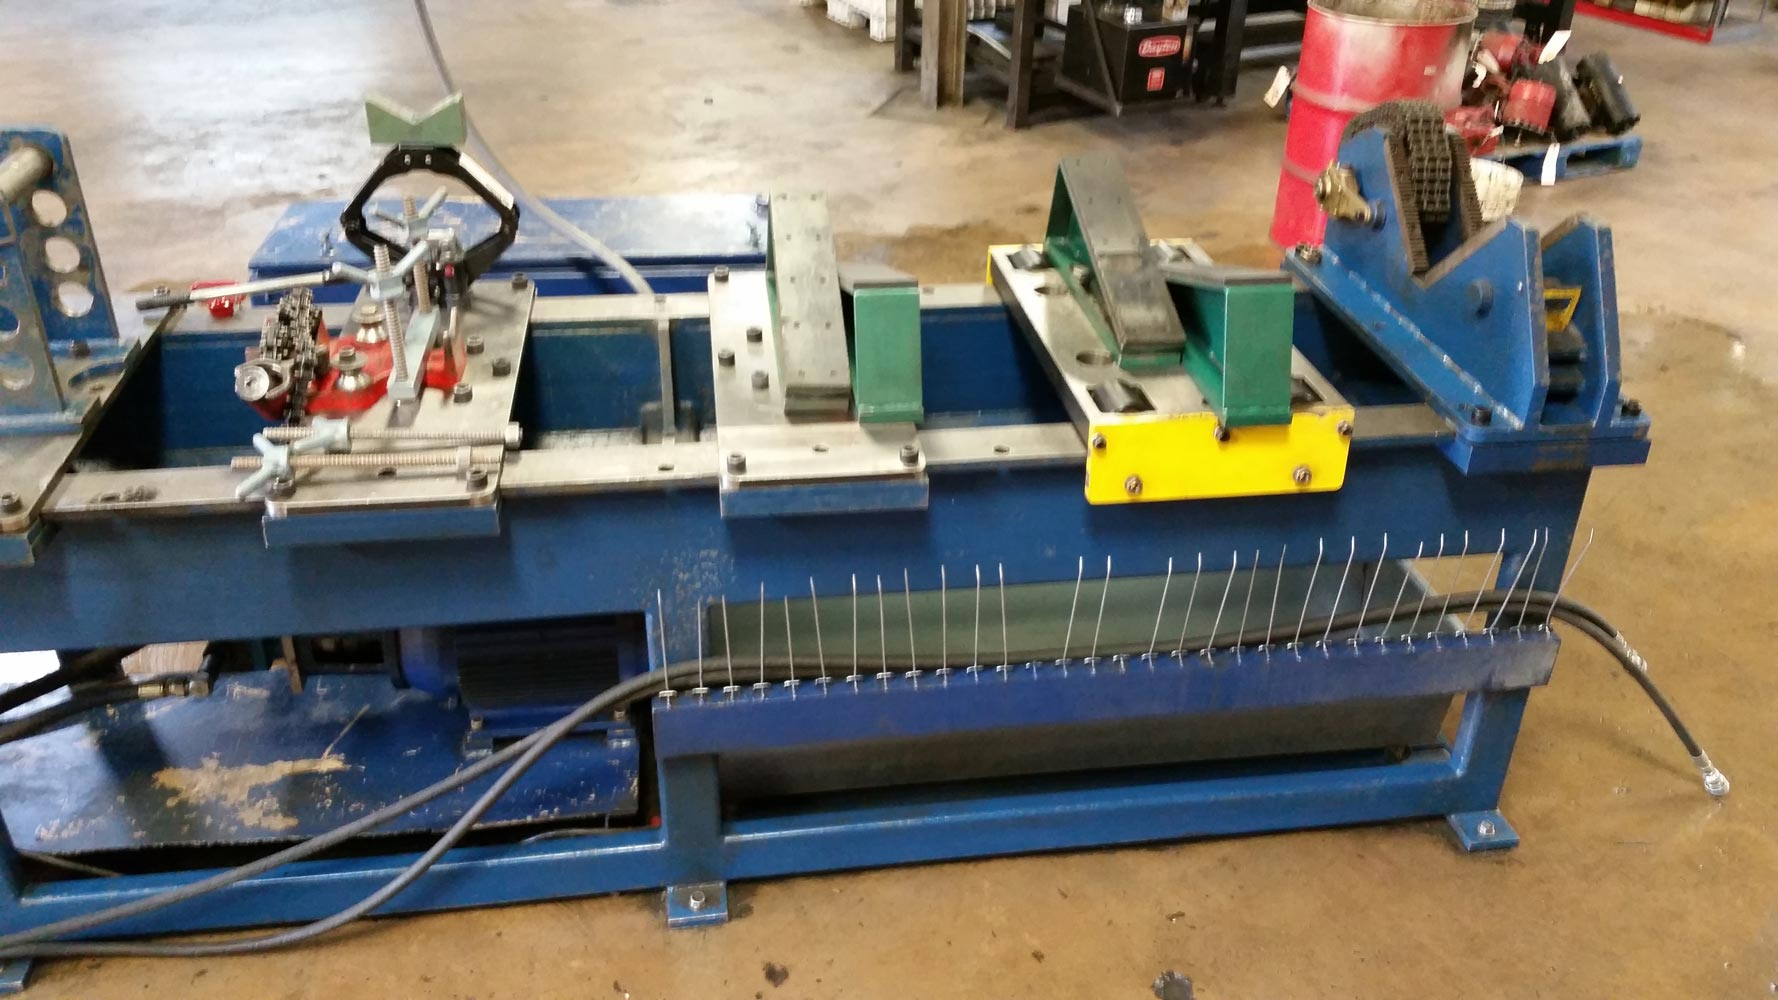 replacement of machinery Reed machinery, inc is a manufacturer of cold forming and thread rolling  machines,  flat die, planetary, attachments, automation & replacement parts.